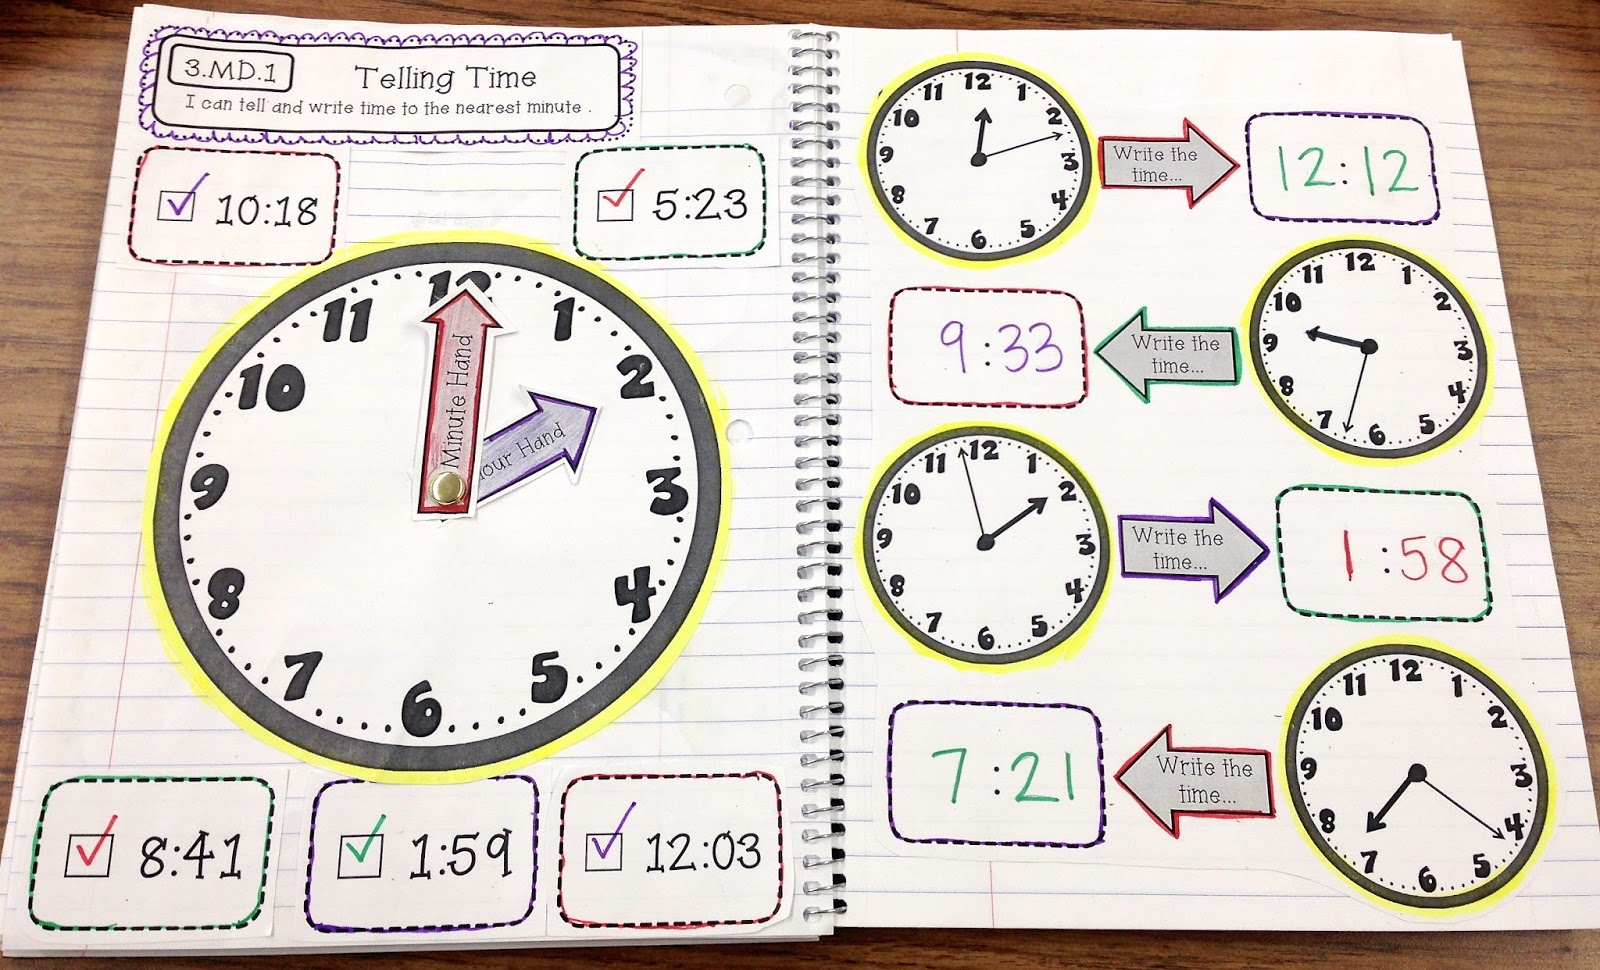 Telling Time Games For 3rd Grade